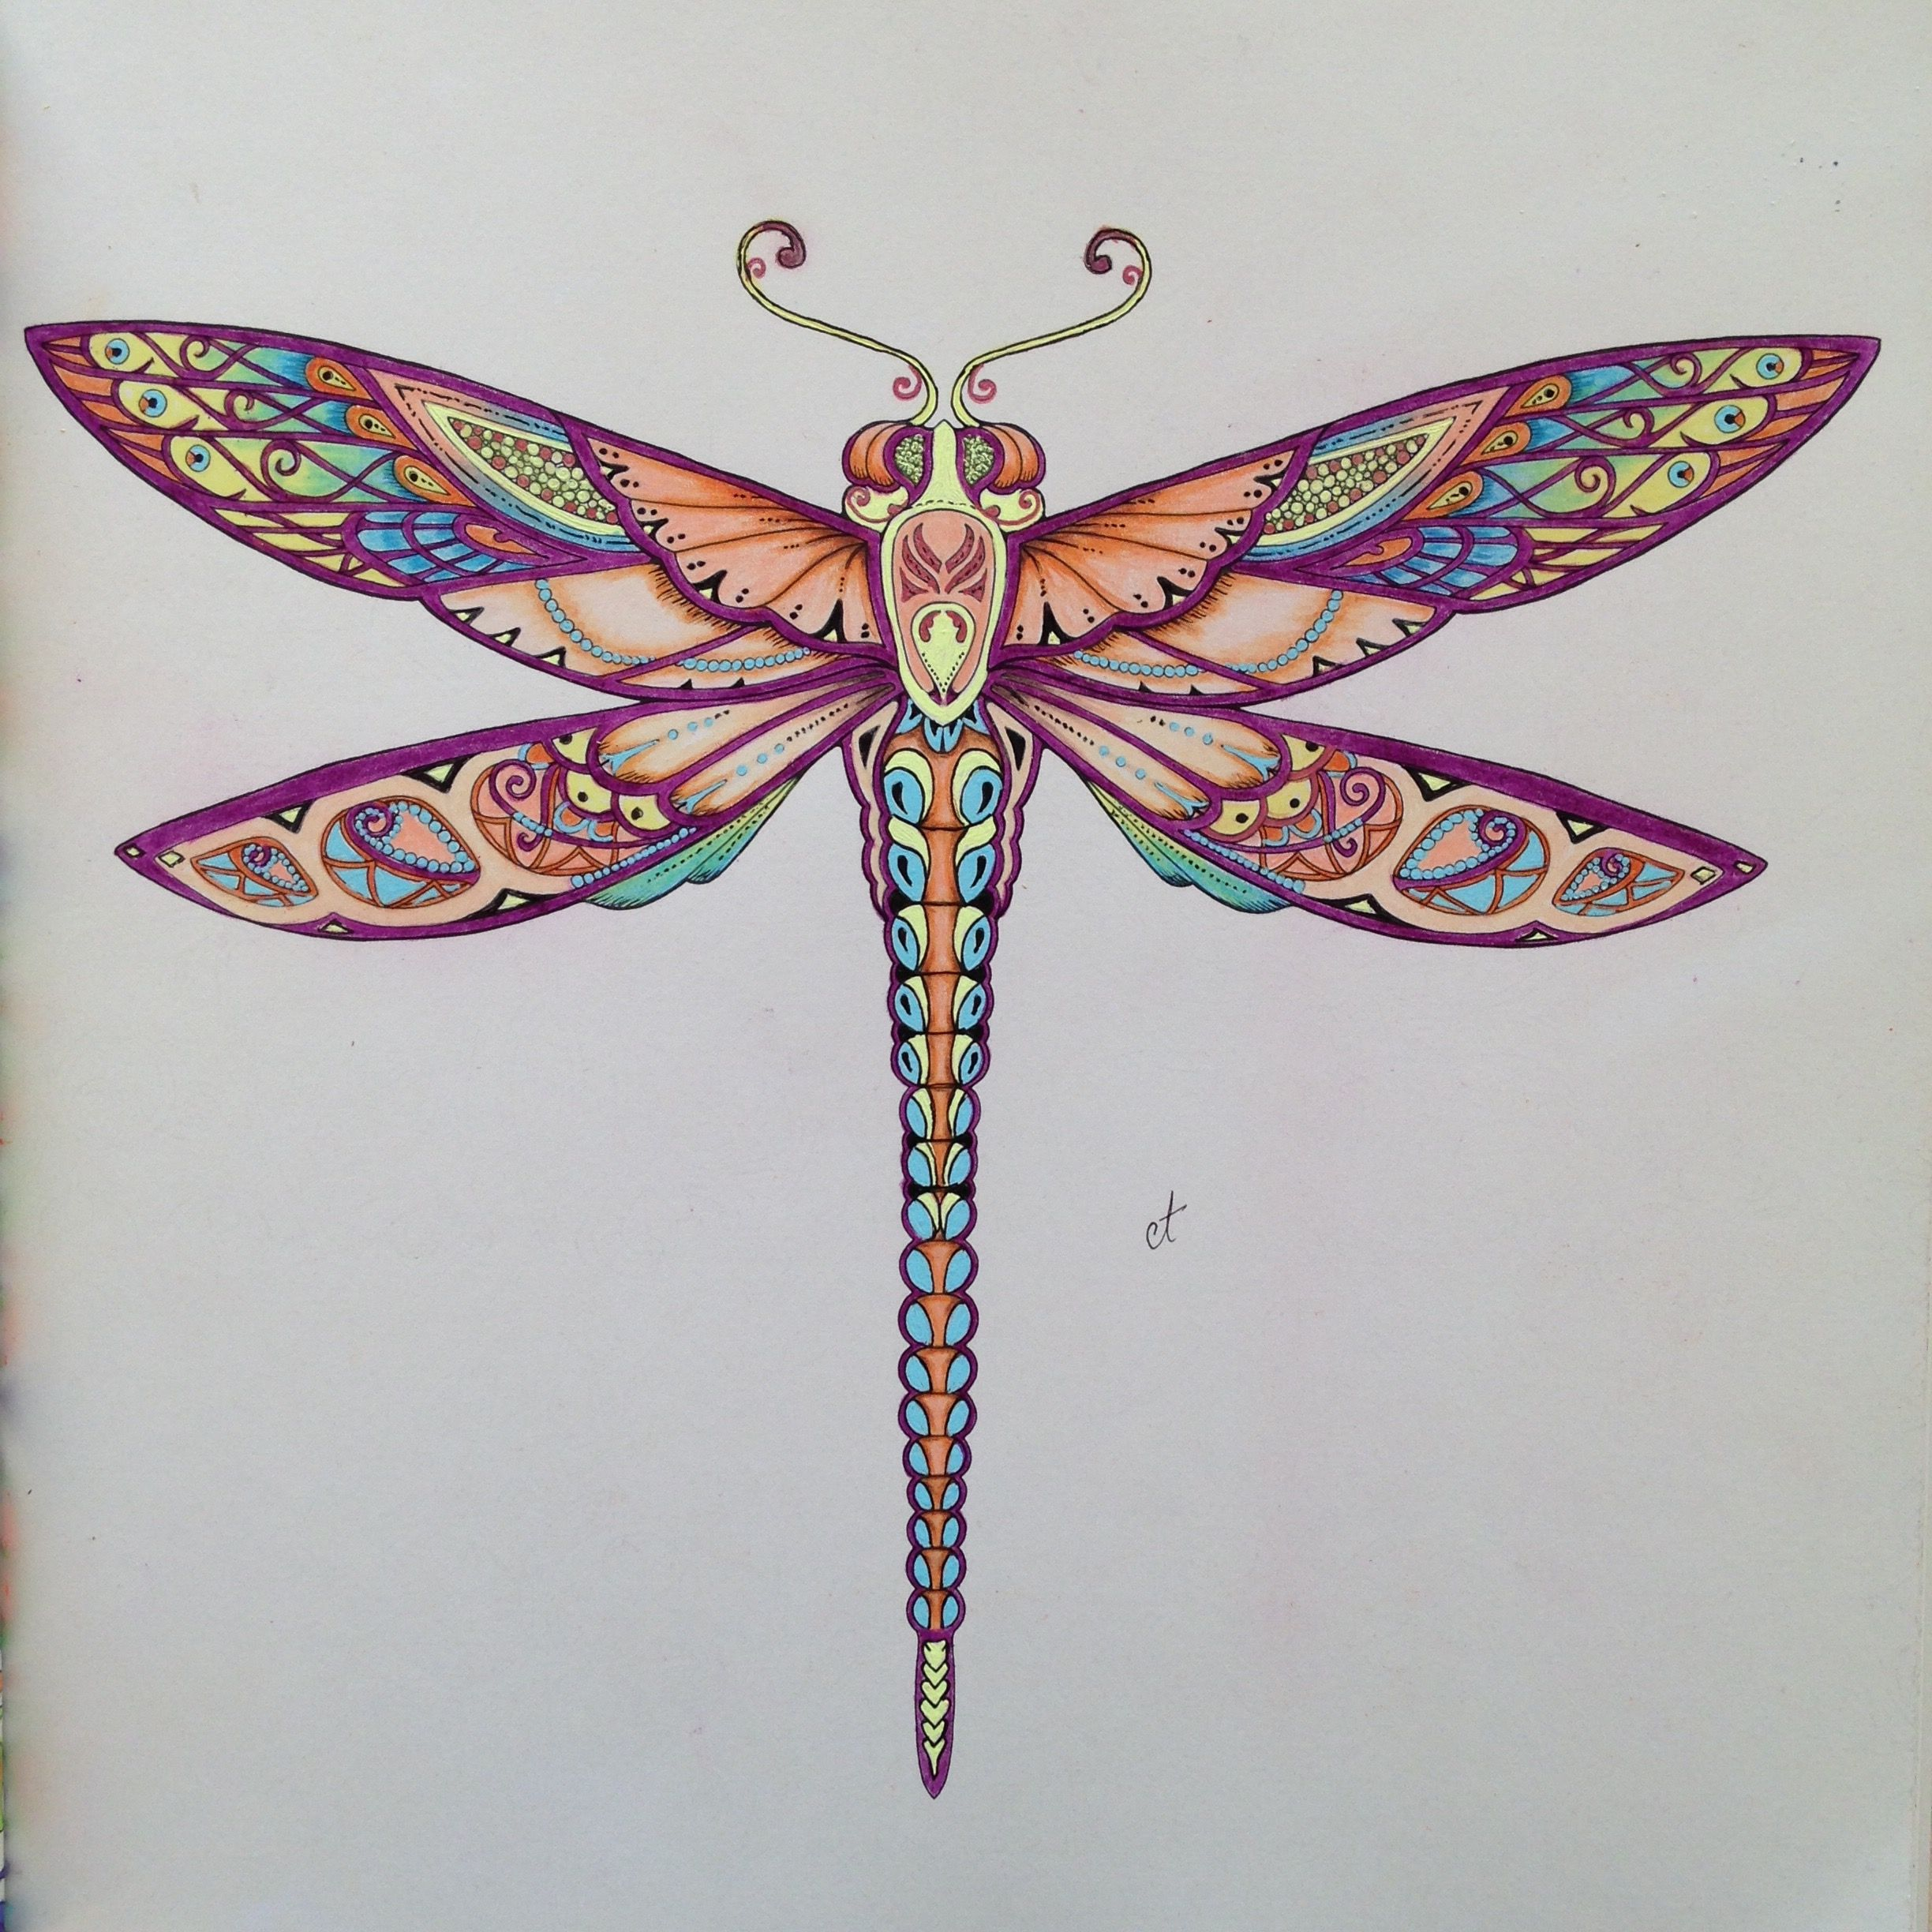 Johanna Basford Coloring Books Colouring Secret Gardens Dragonflies Color Combinations Colored Pencils Diy Art Journaling